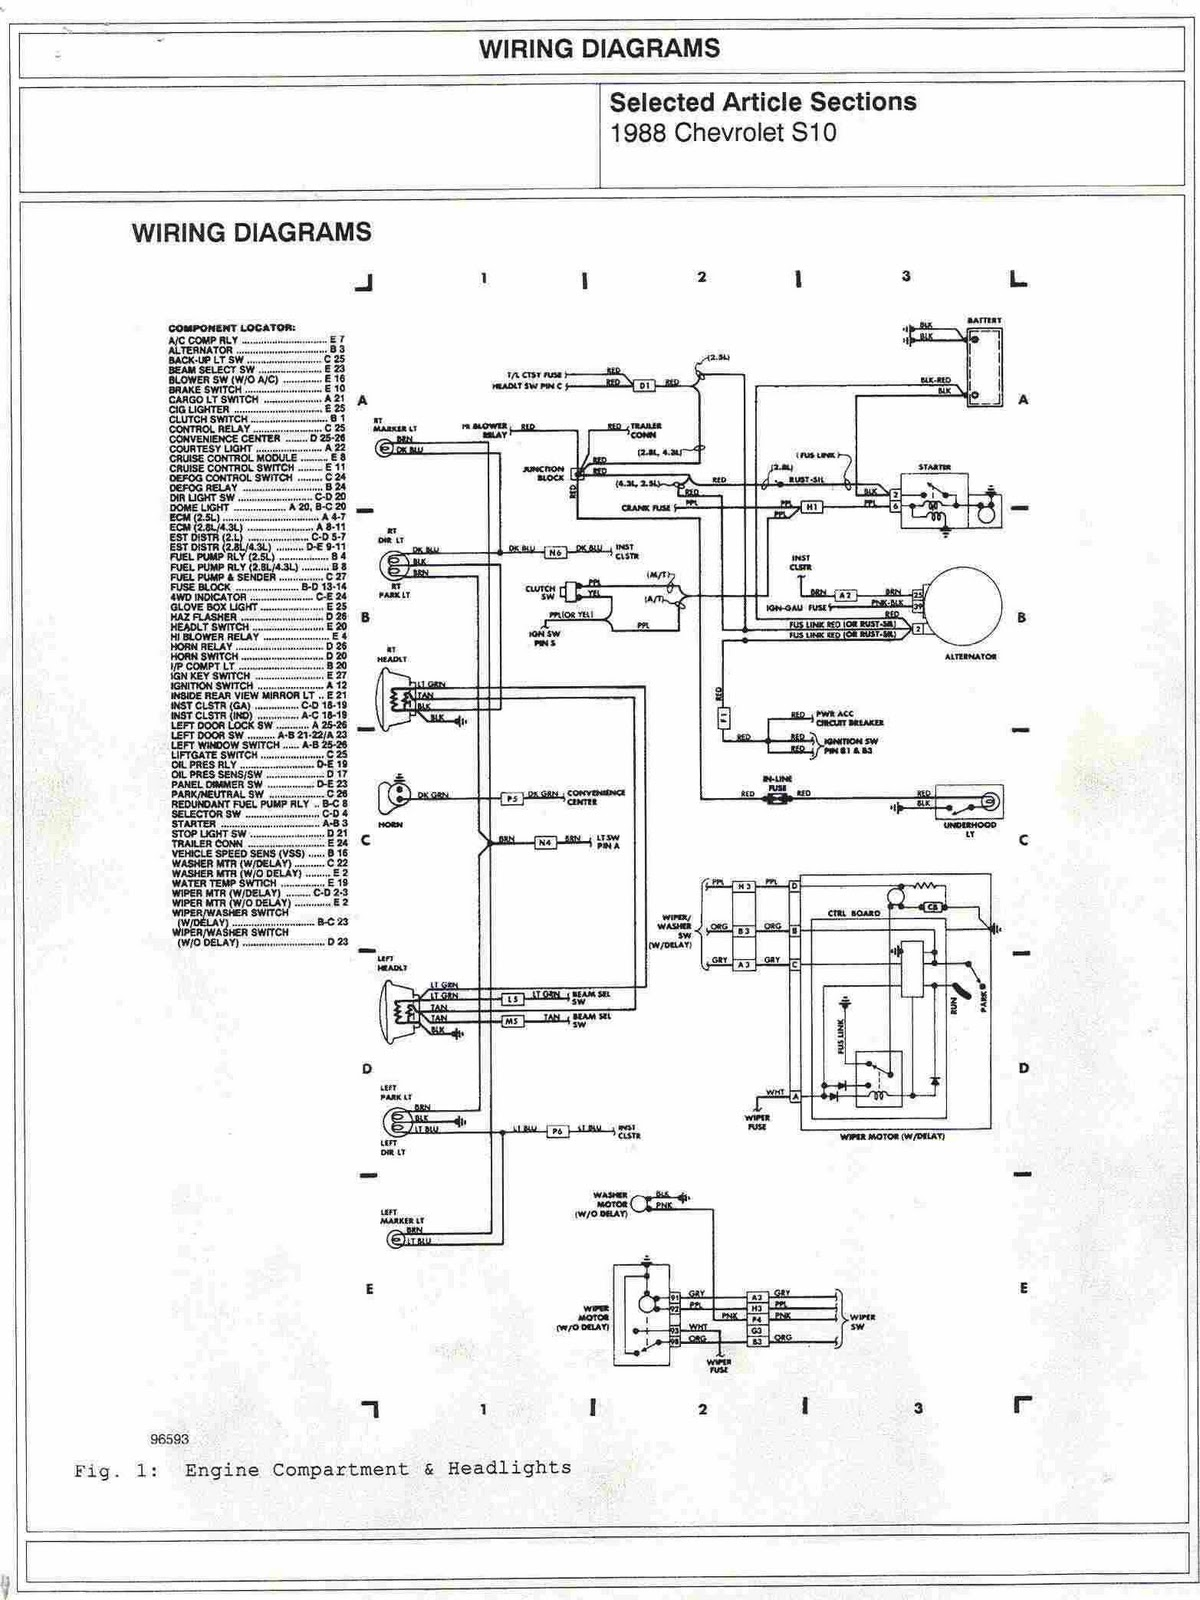 1988+Chevrolet+S10+Engine+Compartment+and+Headlights+Wiring+Diagrams 95 s10 wiring diagram 95 tahoe wiring diagram \u2022 wiring diagrams  at crackthecode.co